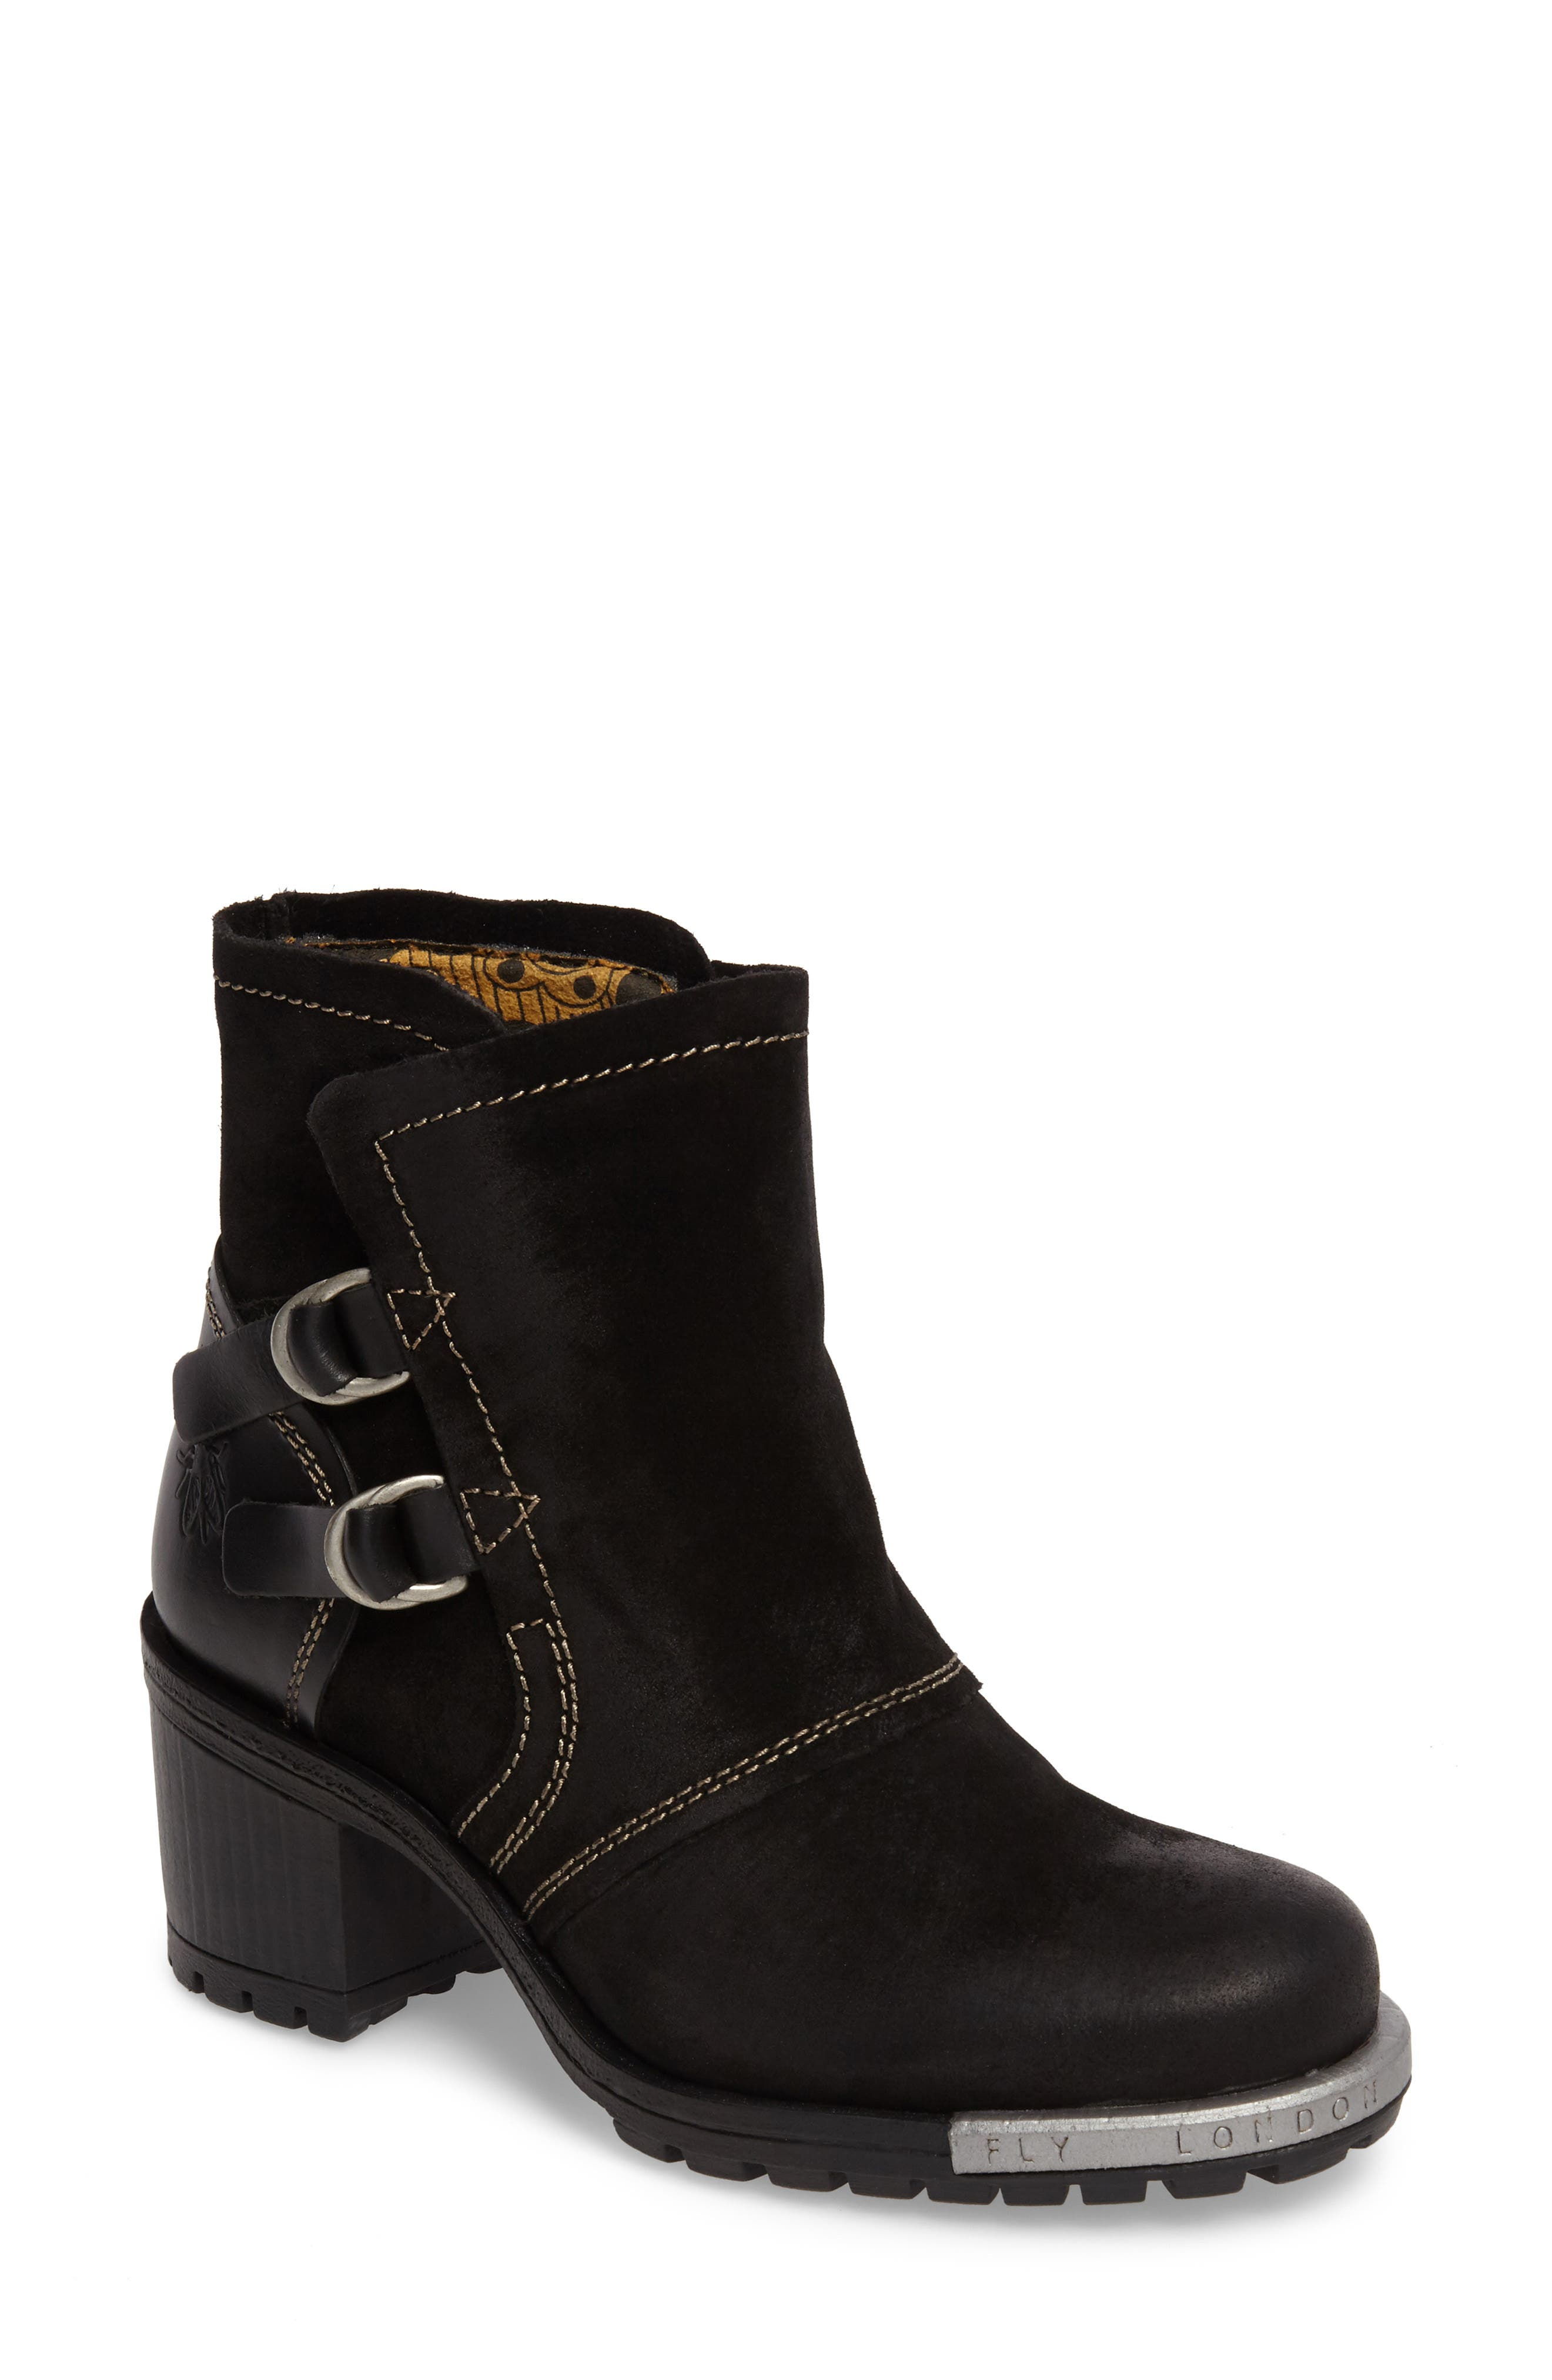 Alternate Image 1 Selected - Fly London Lory Boot (Women)